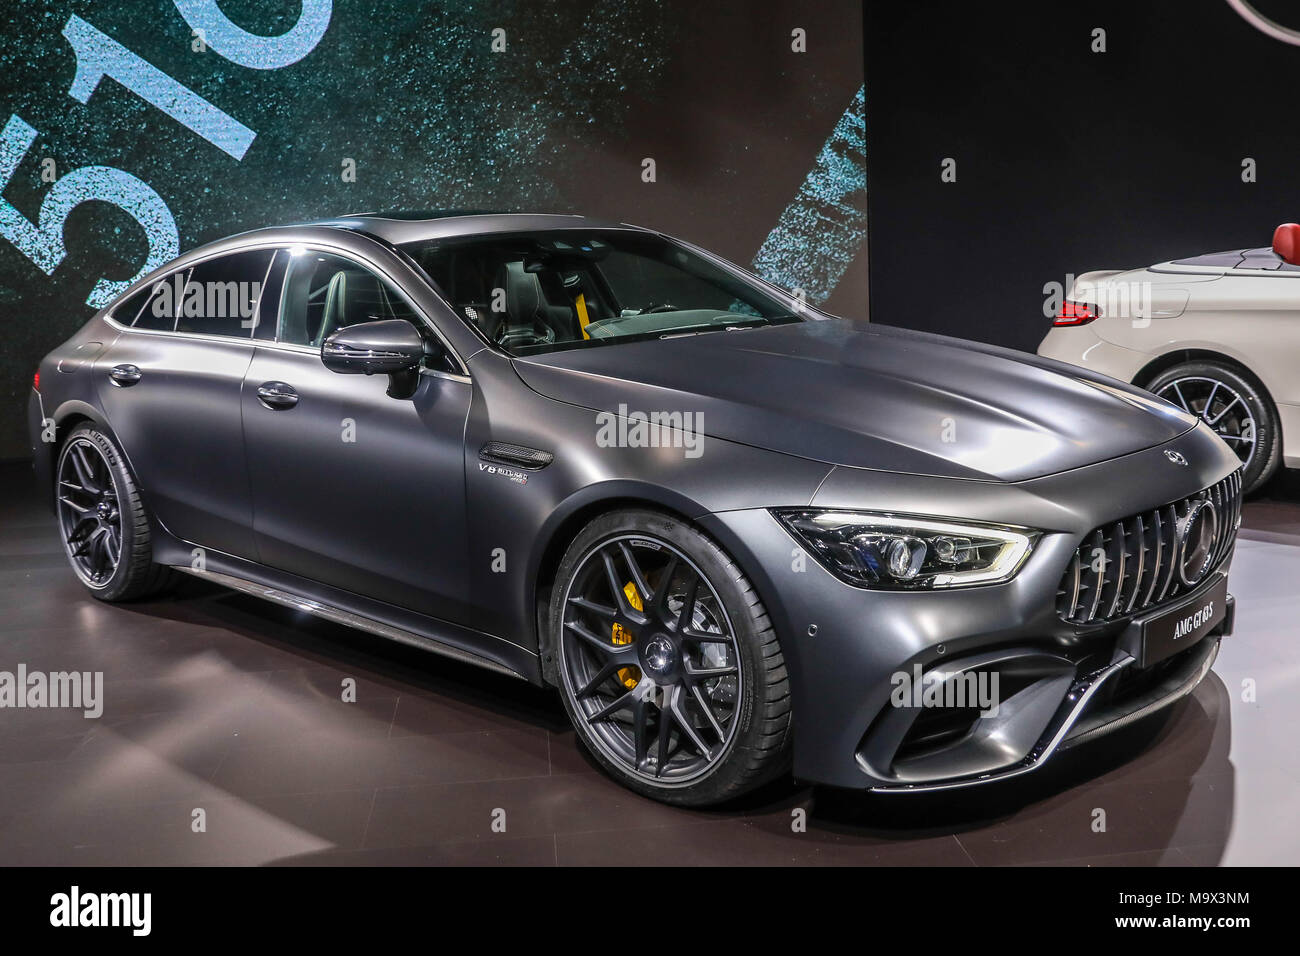 Amg Gt S Stock Photos & Amg Gt S Stock Images - Alamy